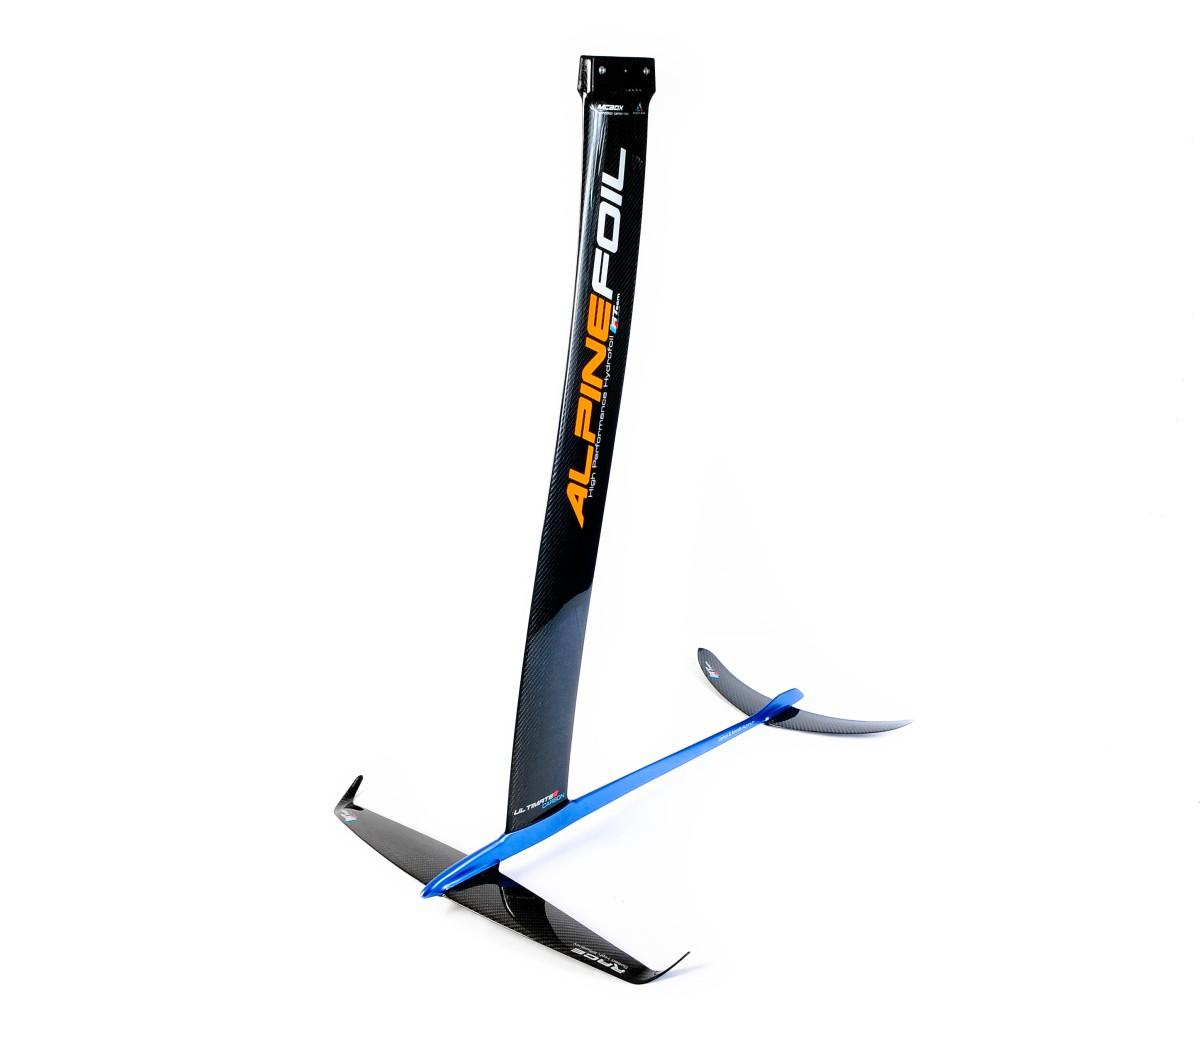 Ultimate kitefoil alpinefoil shop 1